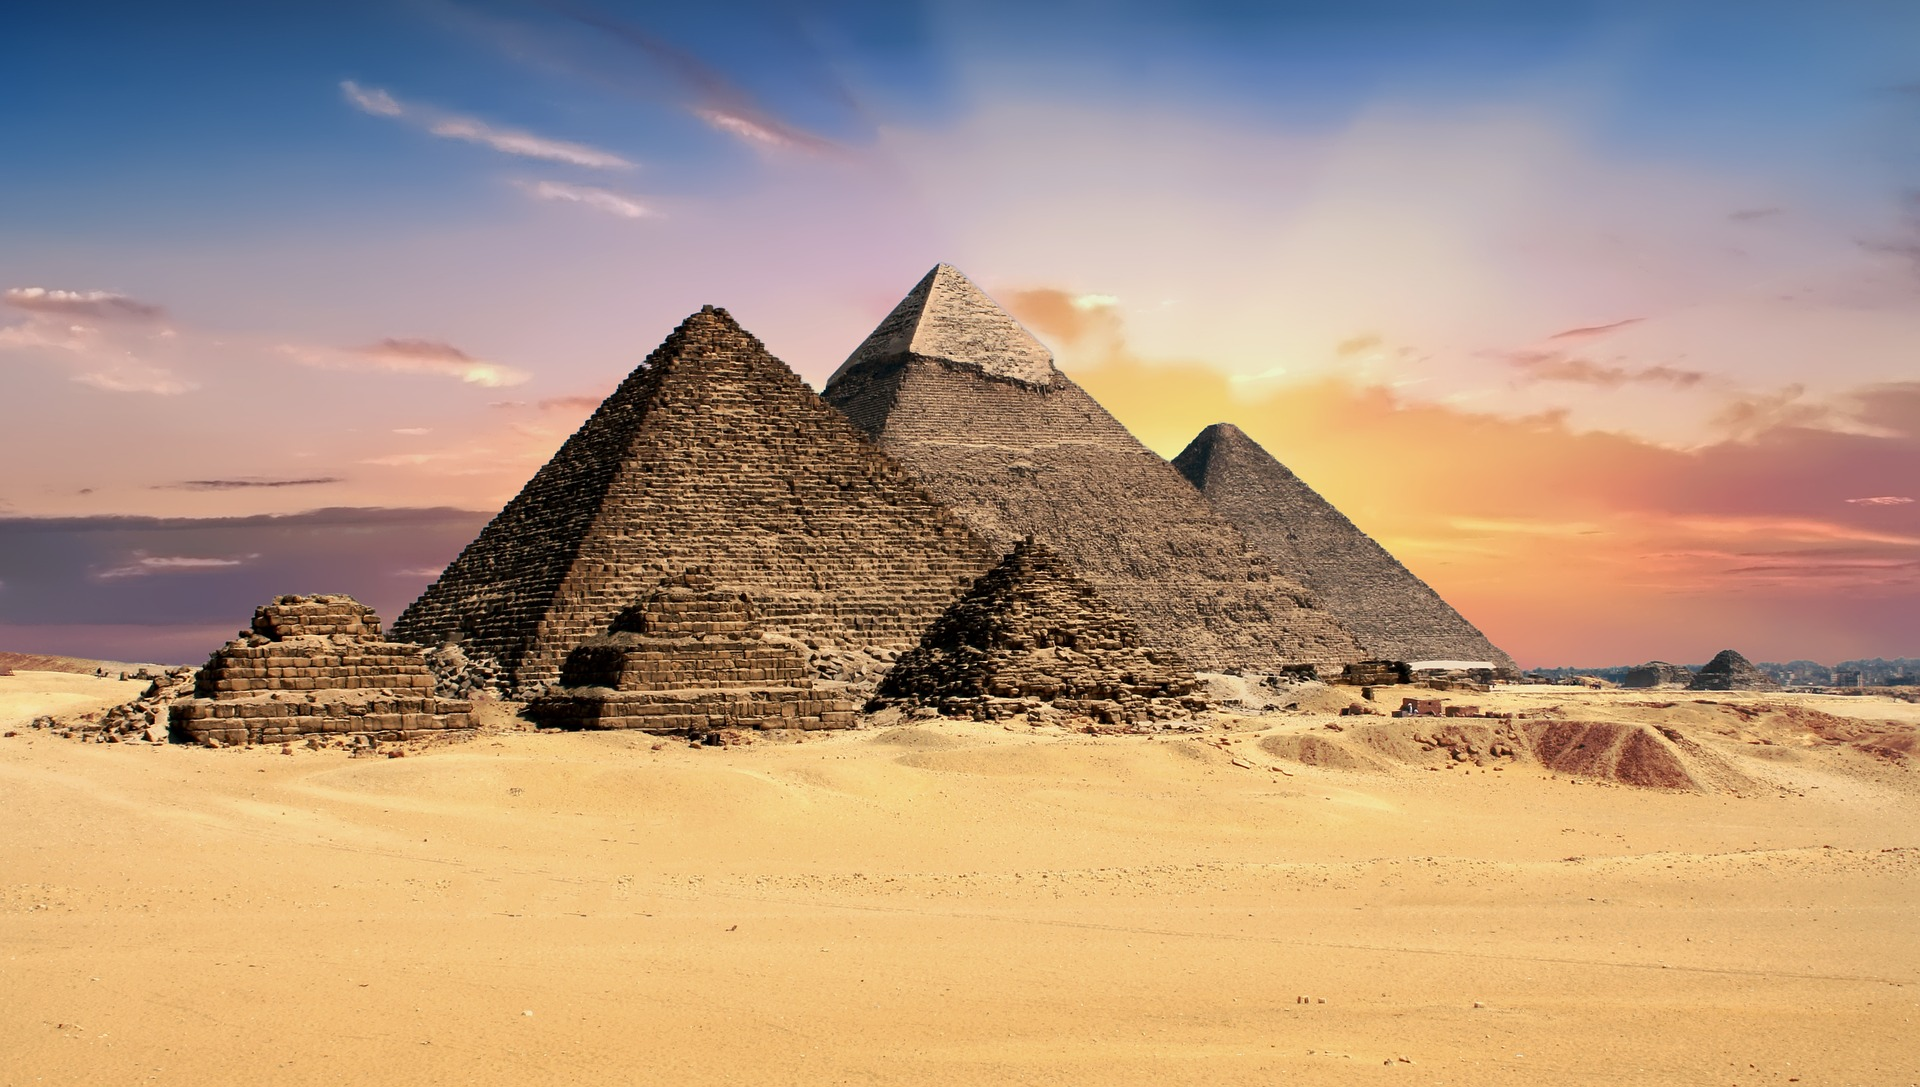 scientists recently married physics and pyramid research to discover a connection between the pyramid's structure and electromagnetism.